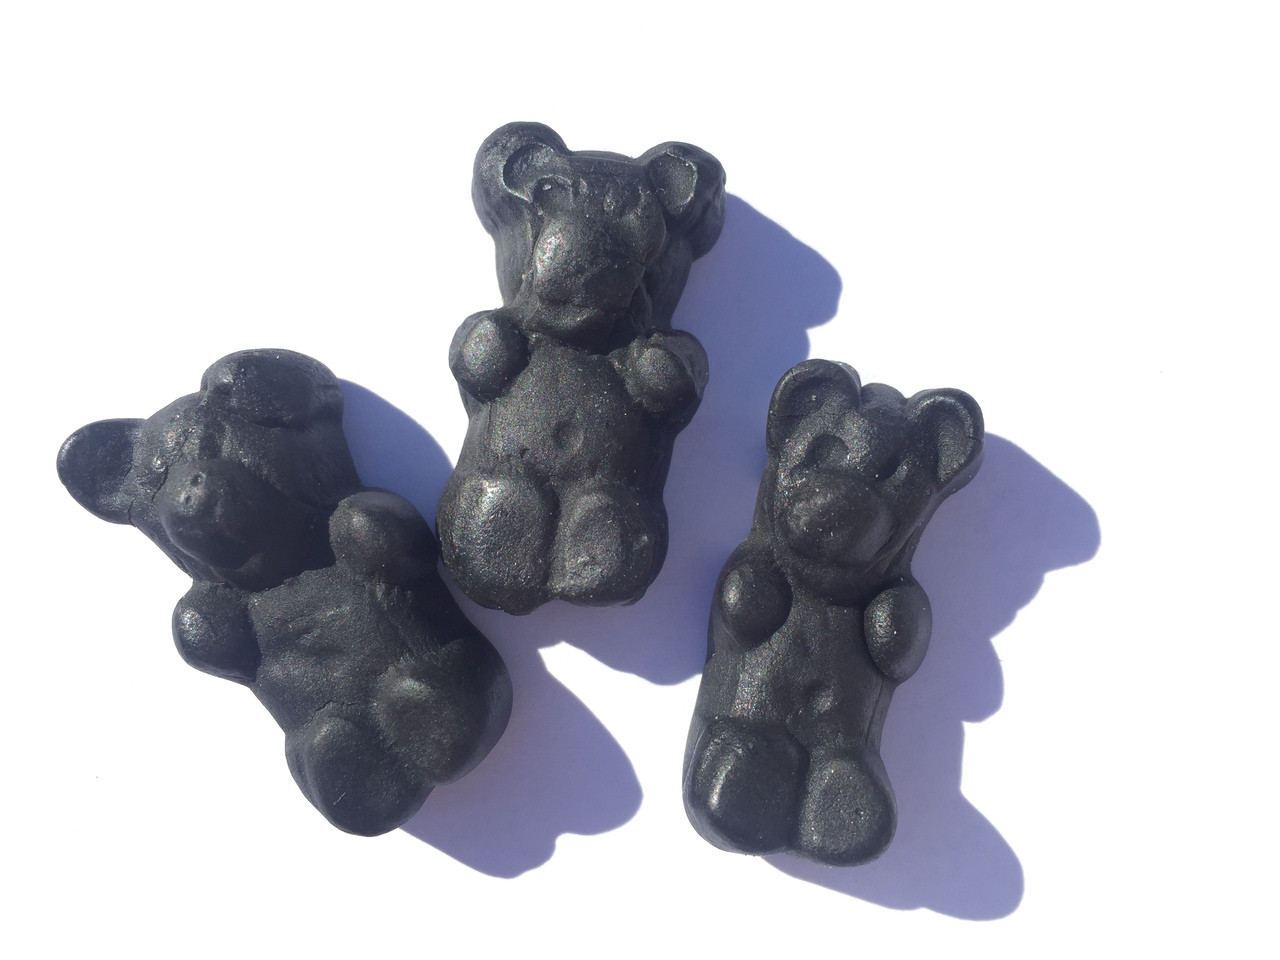 mgc dutch drops licorice bears original sweet not salty. Black Bedroom Furniture Sets. Home Design Ideas